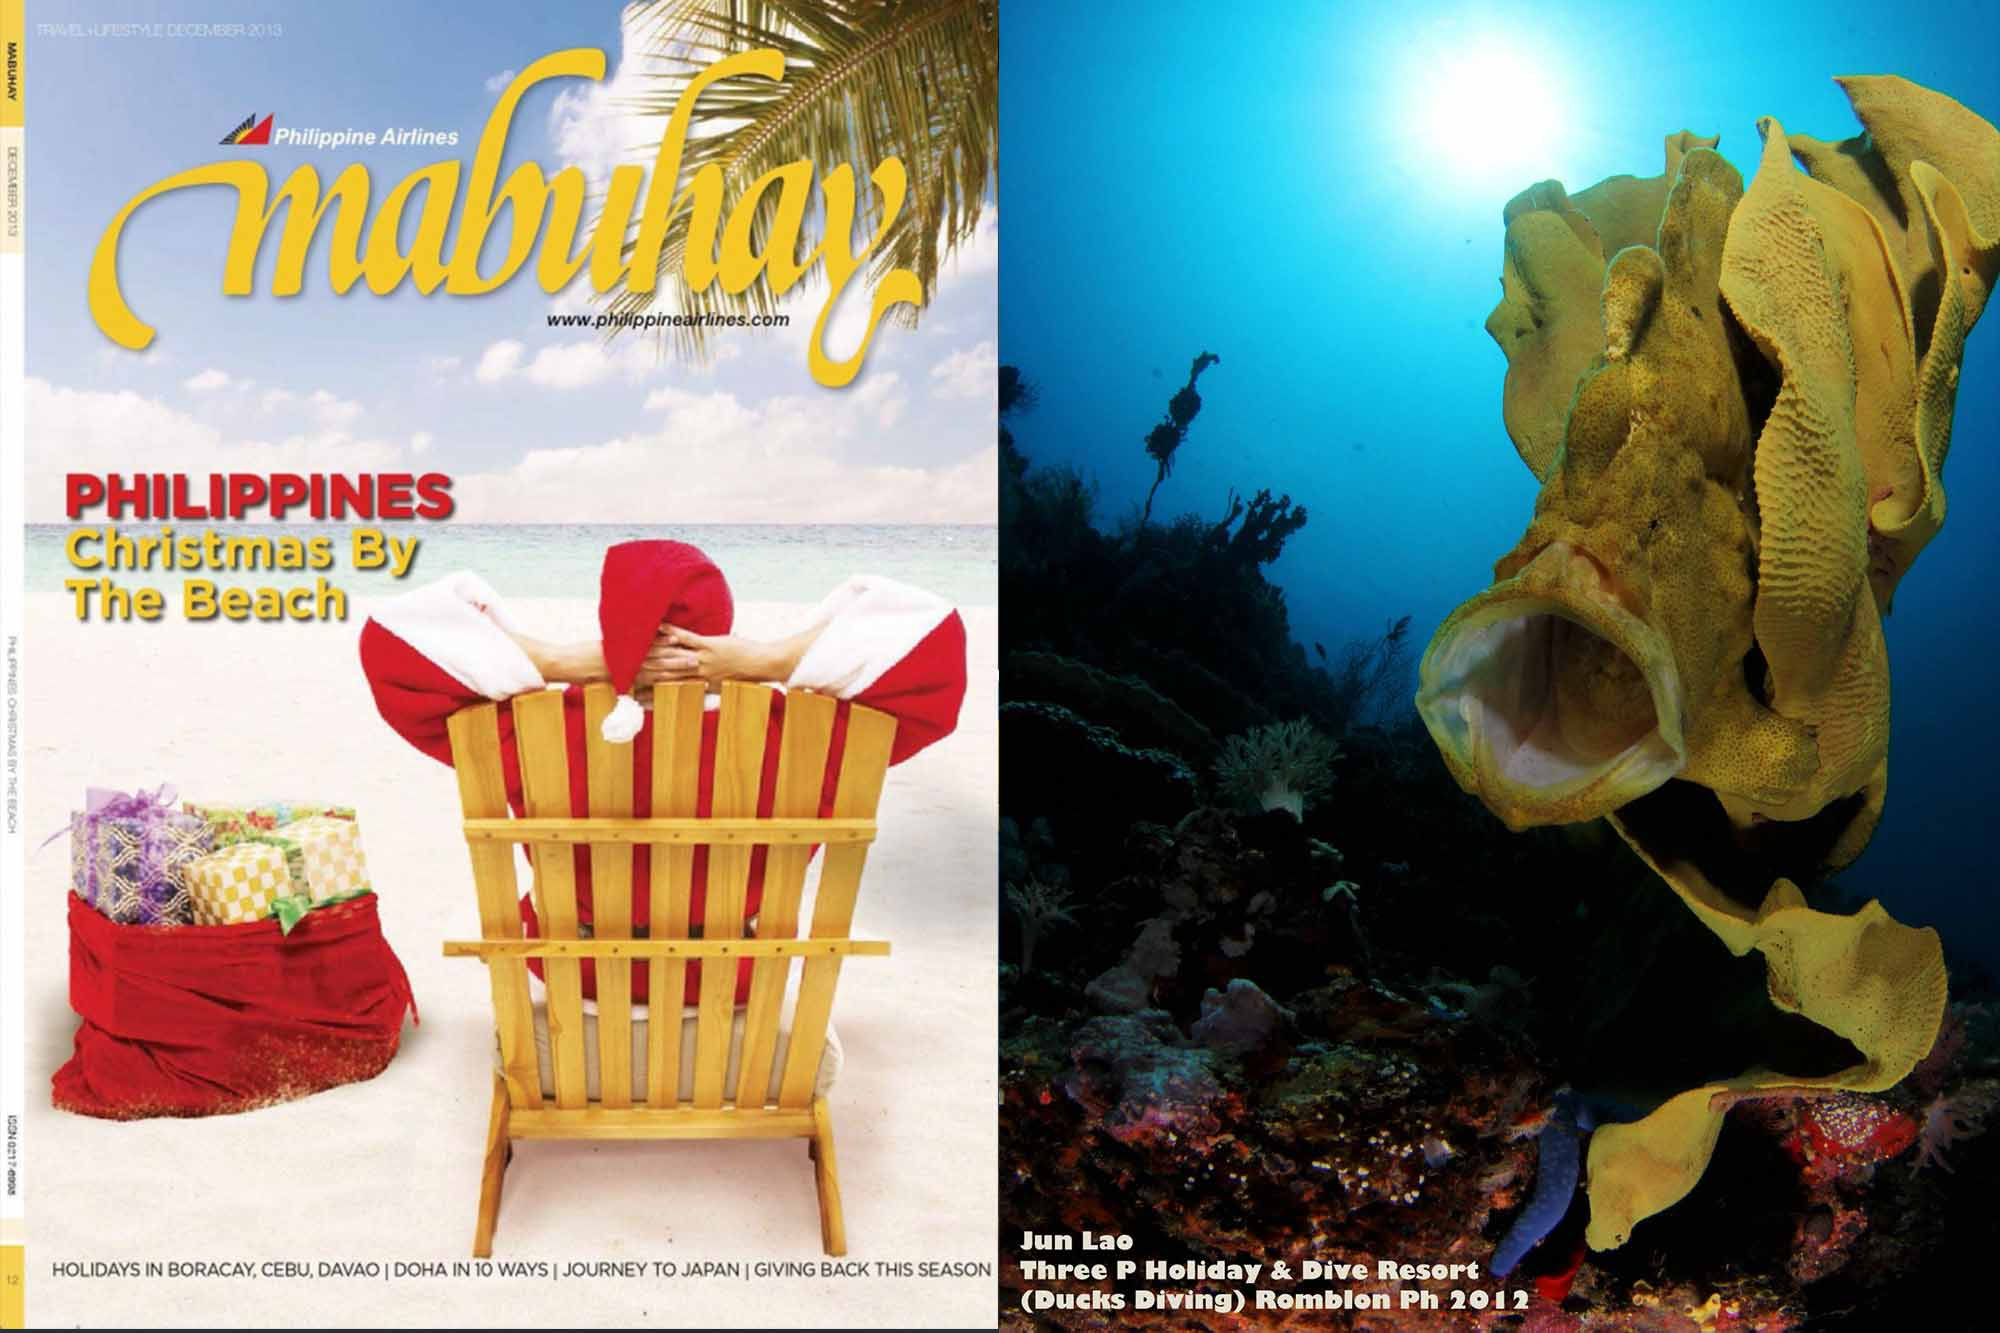 www.the-three-p.com-romblon-island-underwater-macro-photography-scuba-diving-philippines-publications-mabuhay-inflight-magazine-philippine-airlines-article